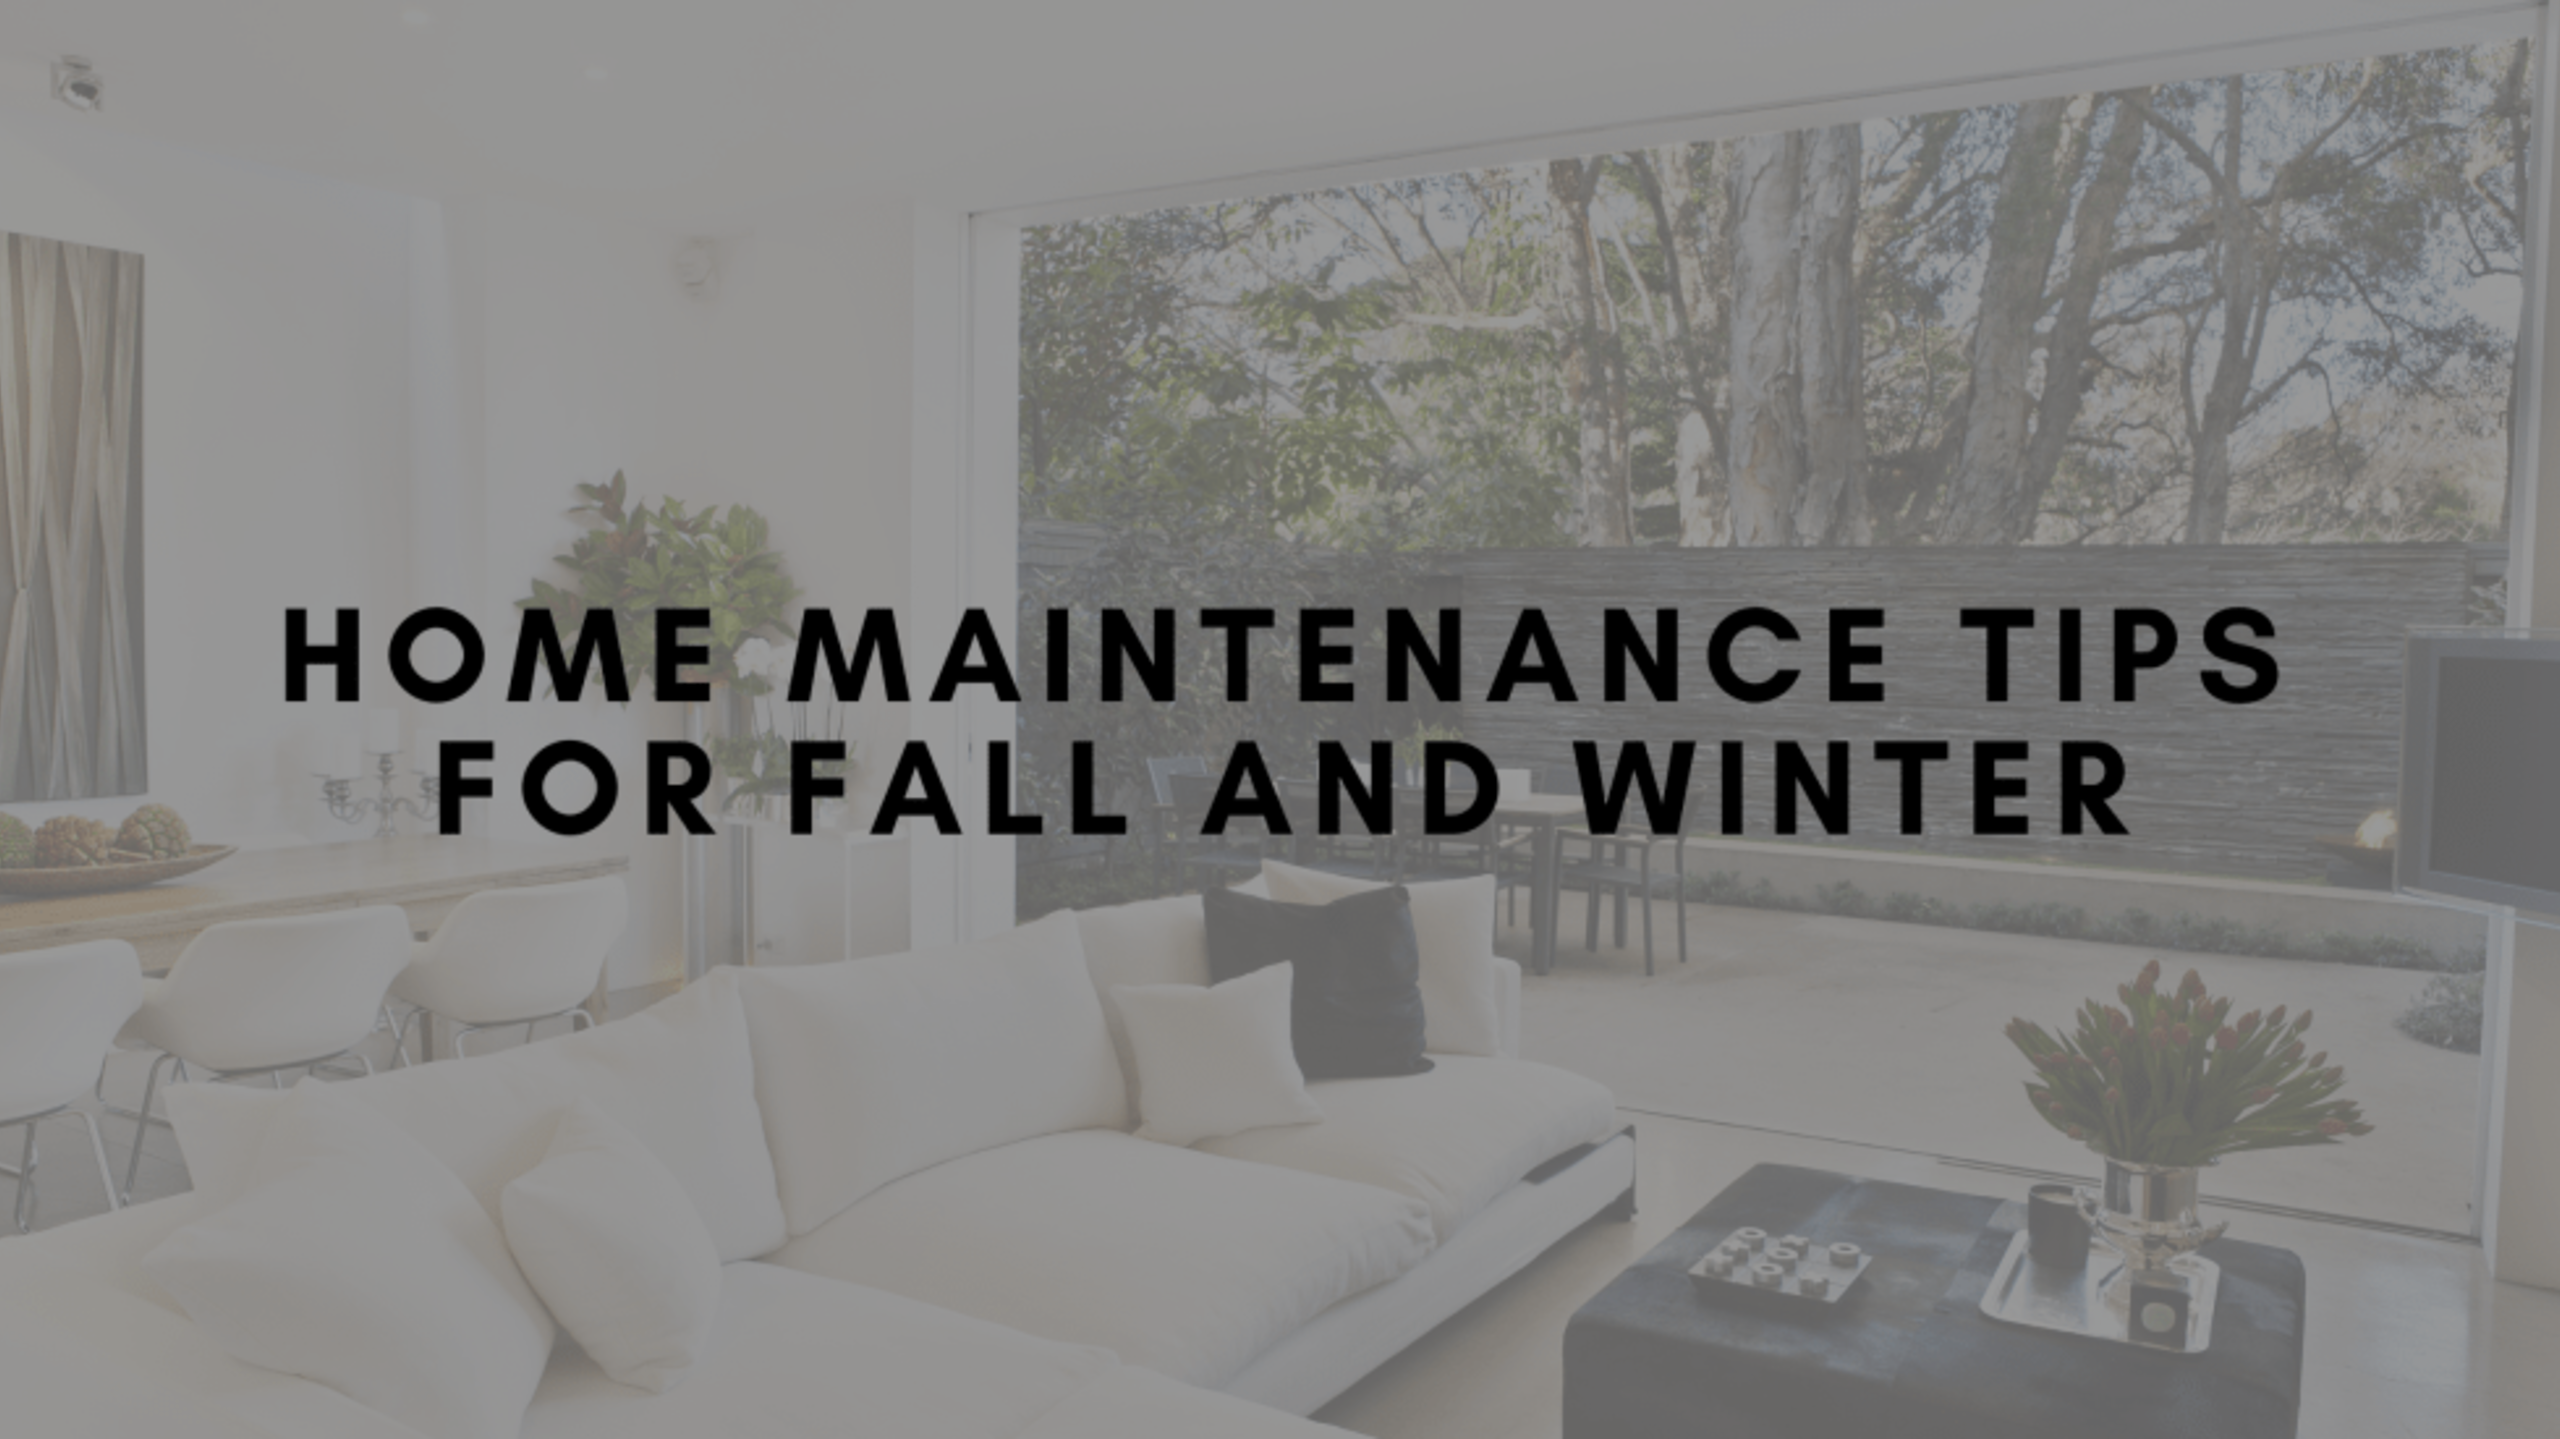 Quick Tips for Home Maintenance This Fall & Winter